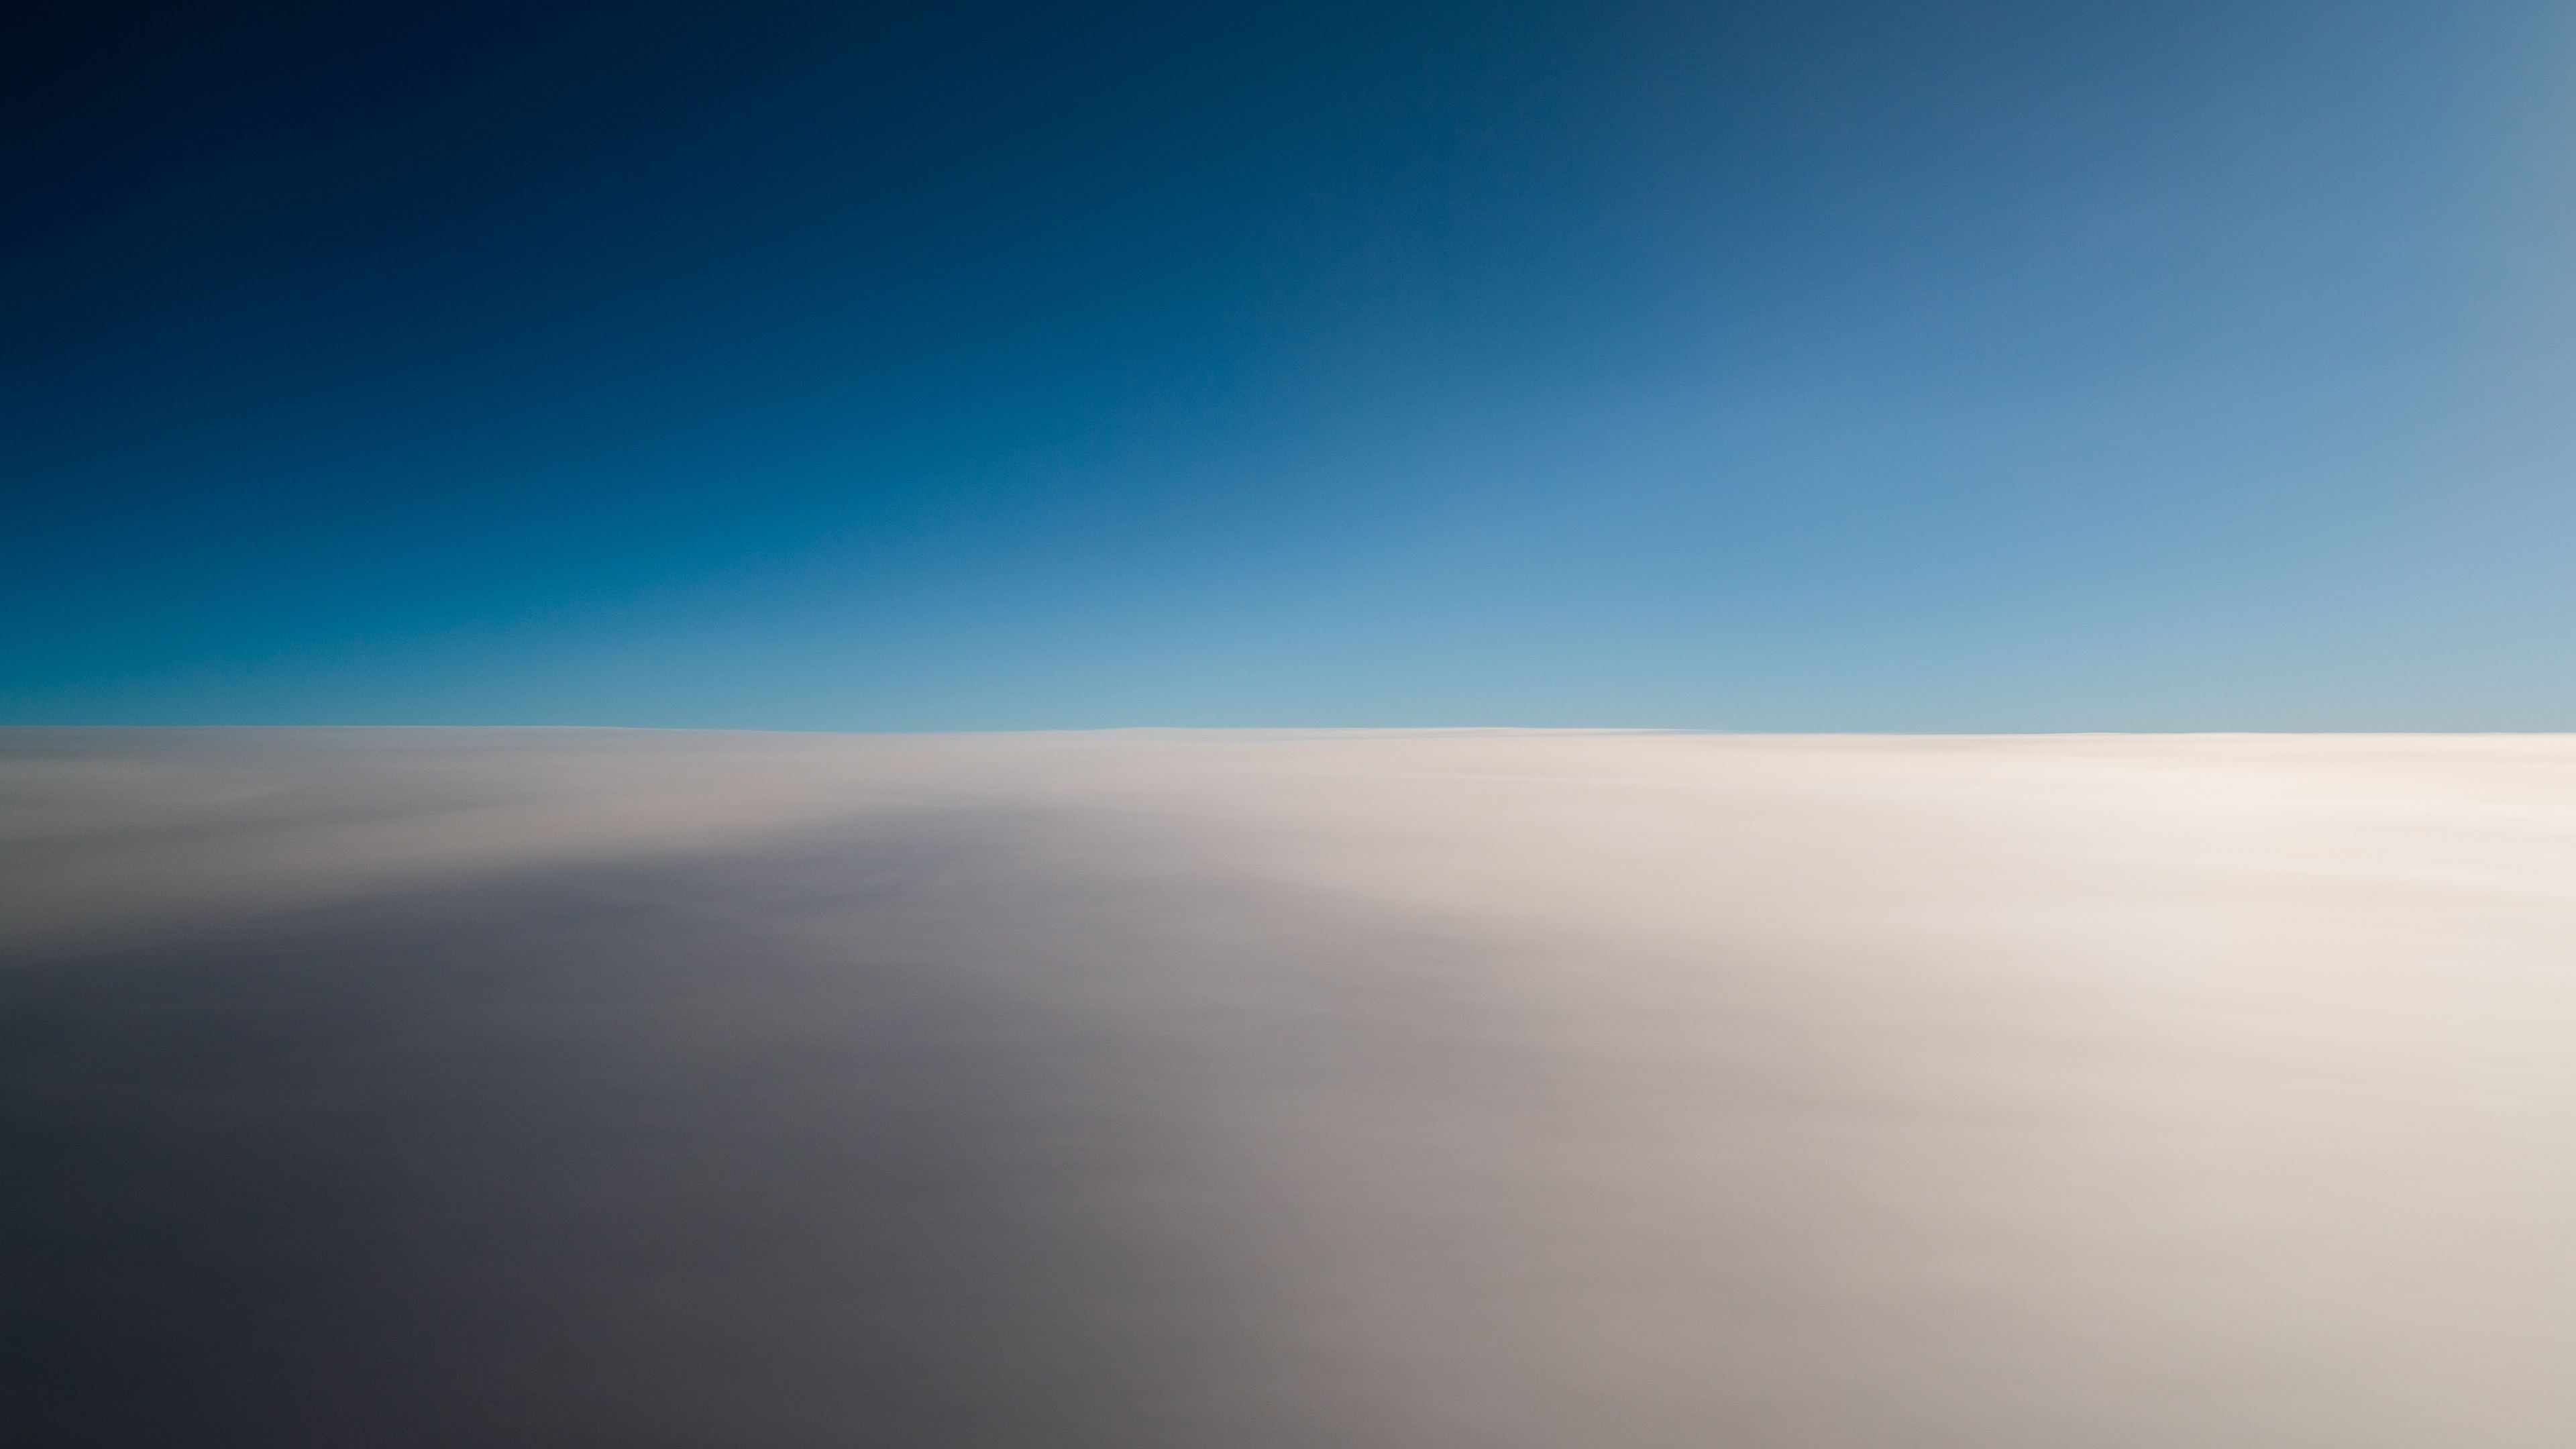 blue sky plane landscape 1551644220 - Blue Sky Plane Landscape - sky wallpapers, nature wallpapers, landscape wallpapers, hd-wallpapers, 4k-wallpapers